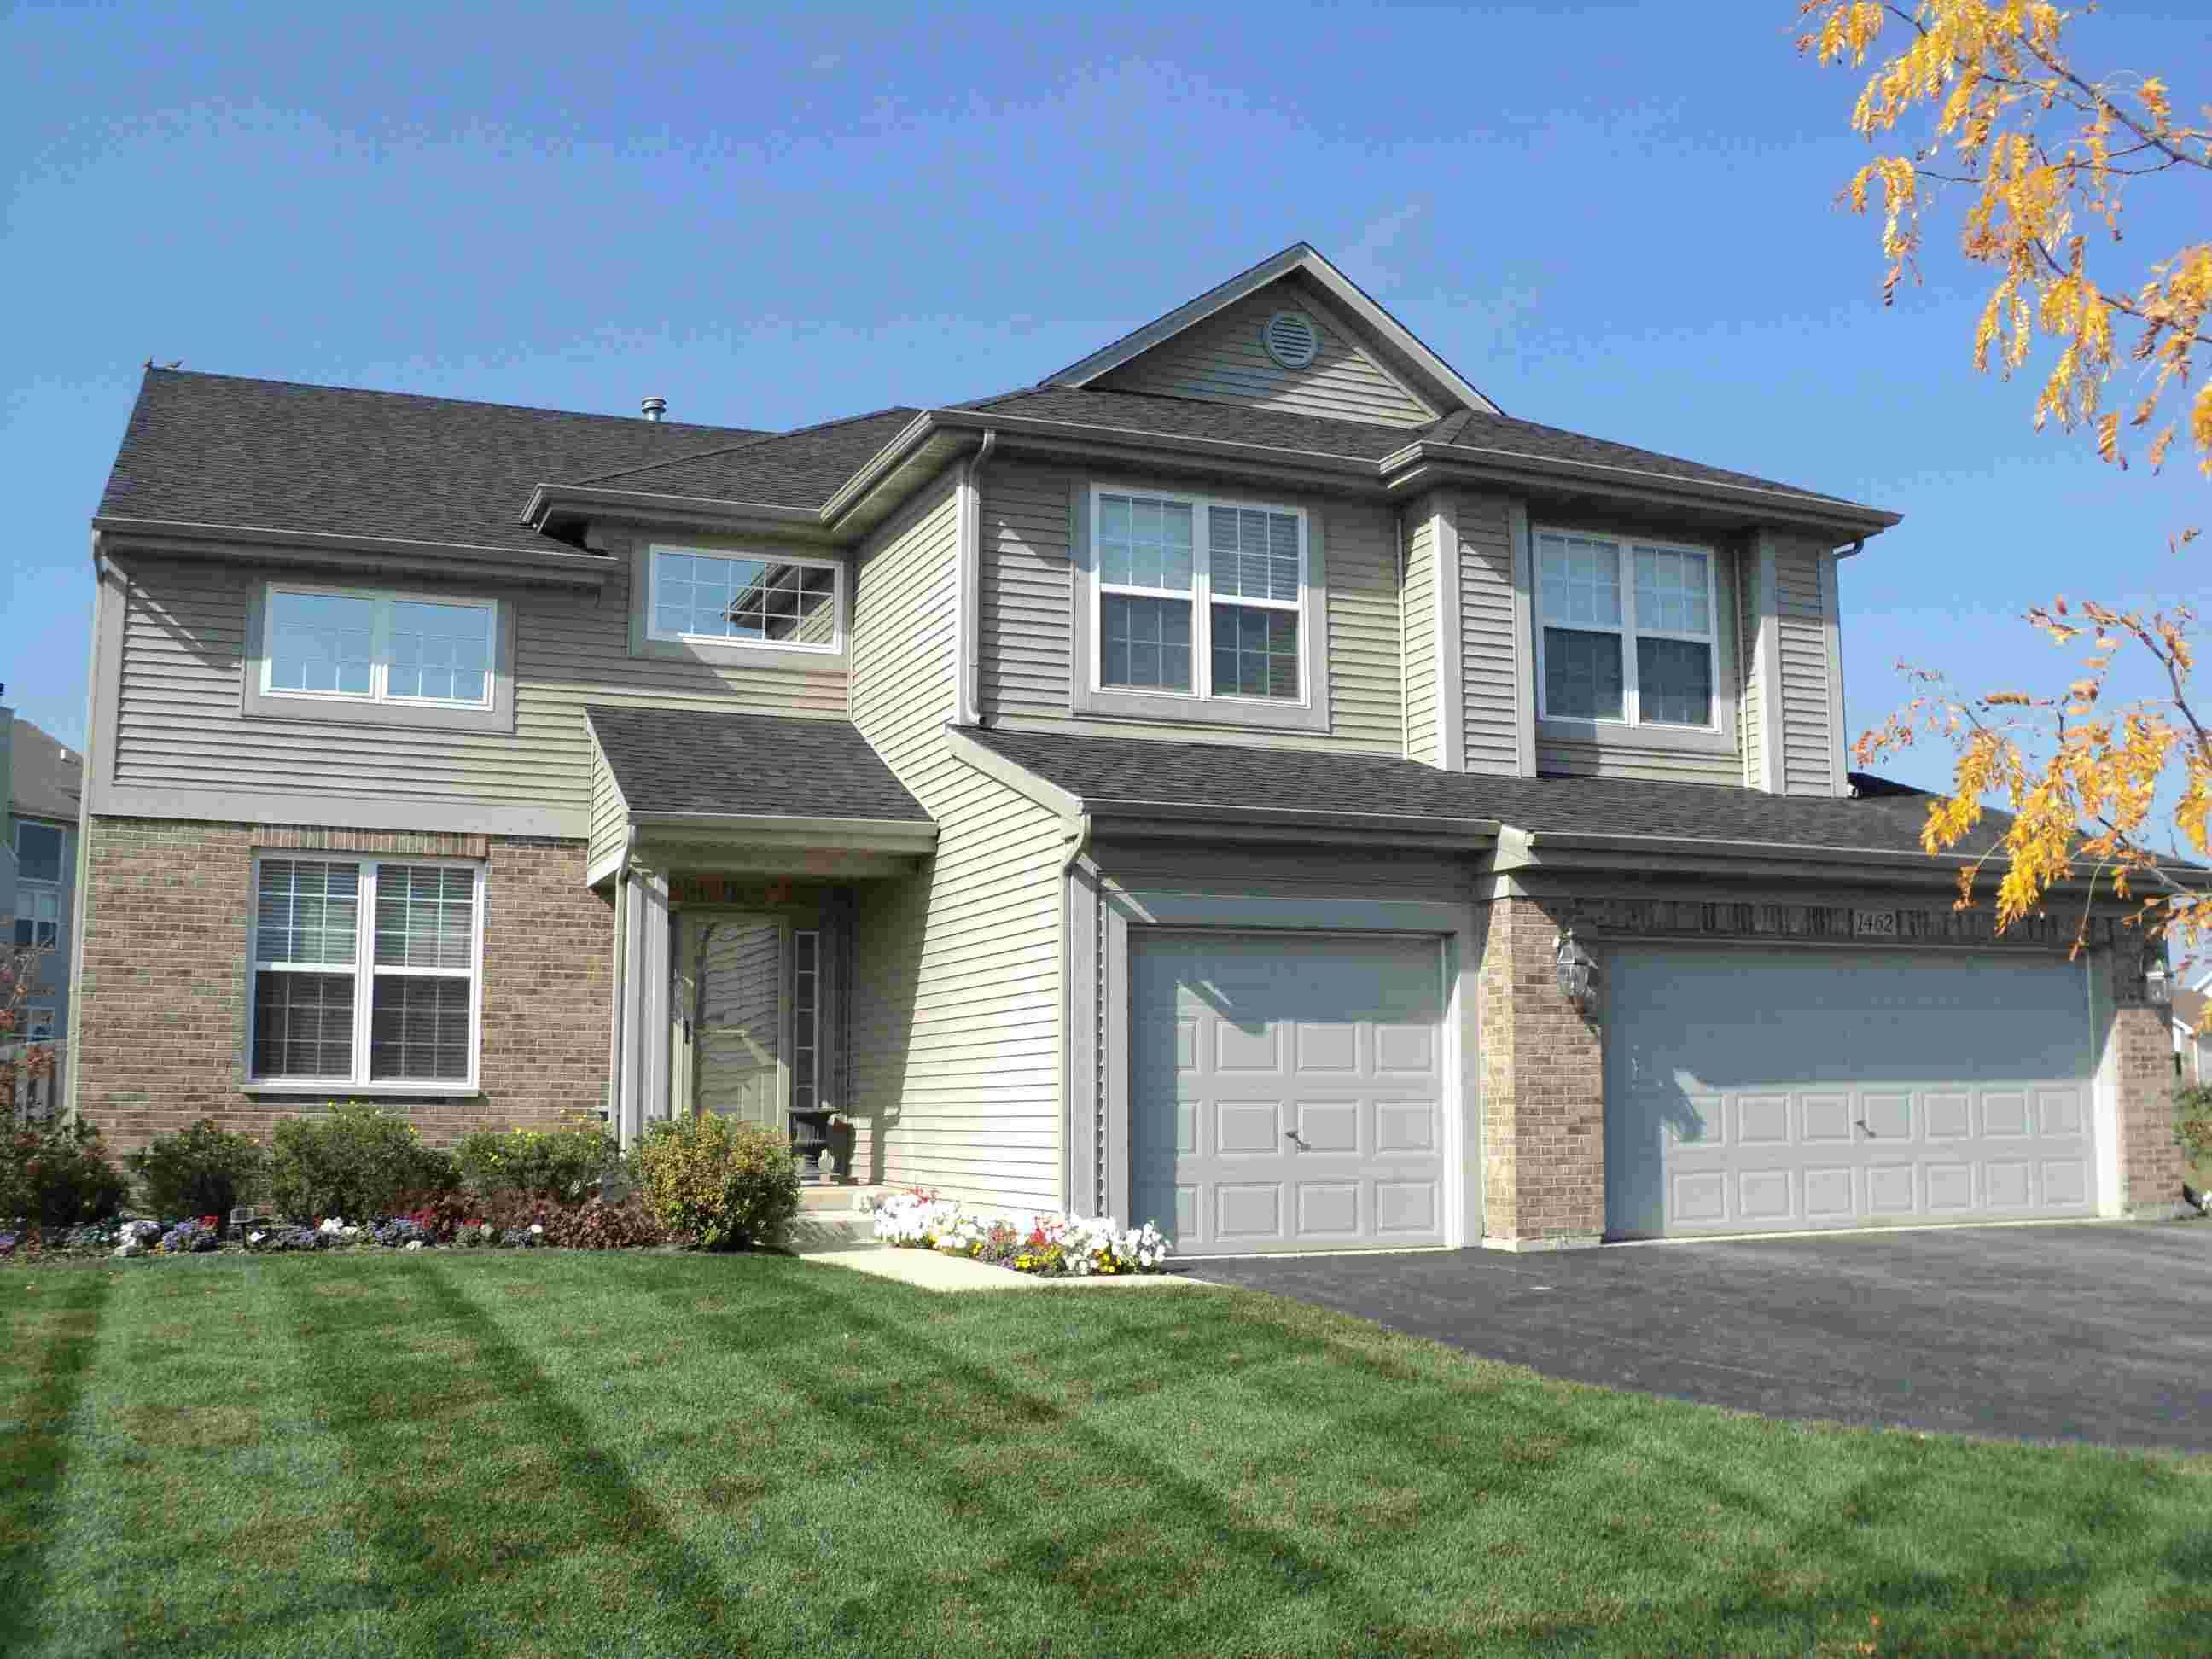 cee34556a84d8fc239f4655456c23aab - Better Homes And Gardens Real Estate Star